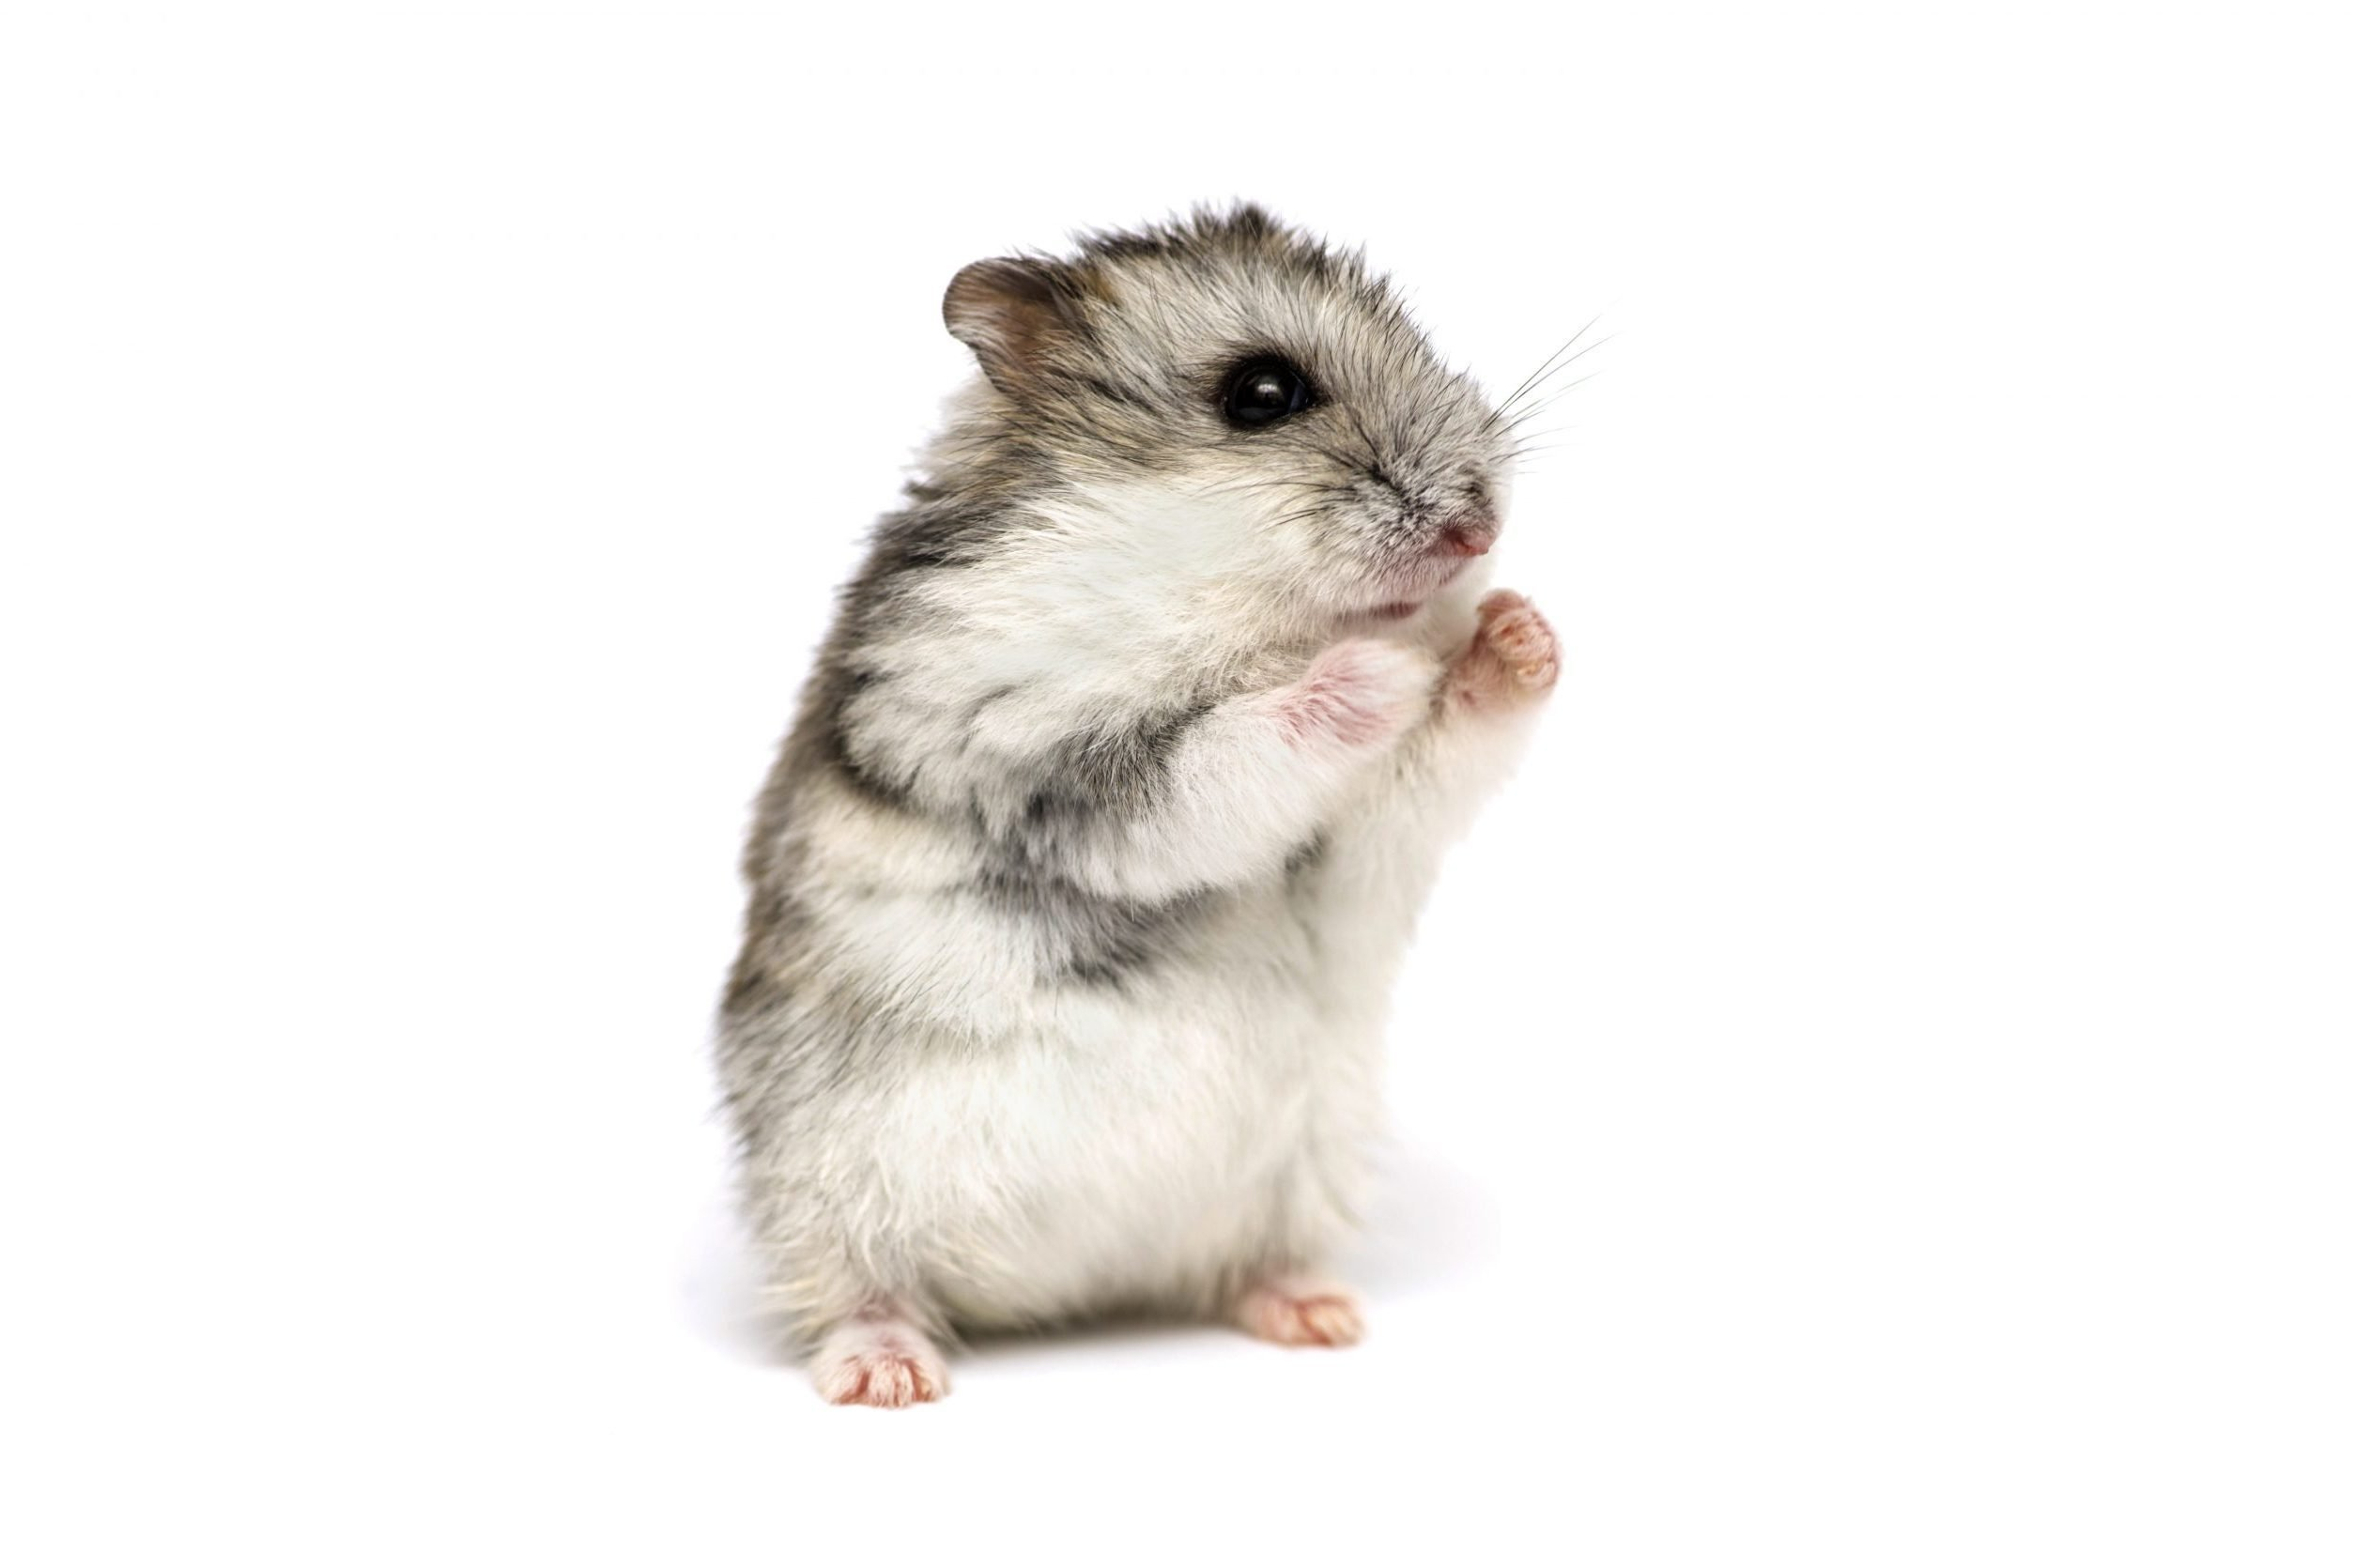 Small domestic hamster isolated on white background. Gray Syrian hamster stands on his hind legs isolated on a white background